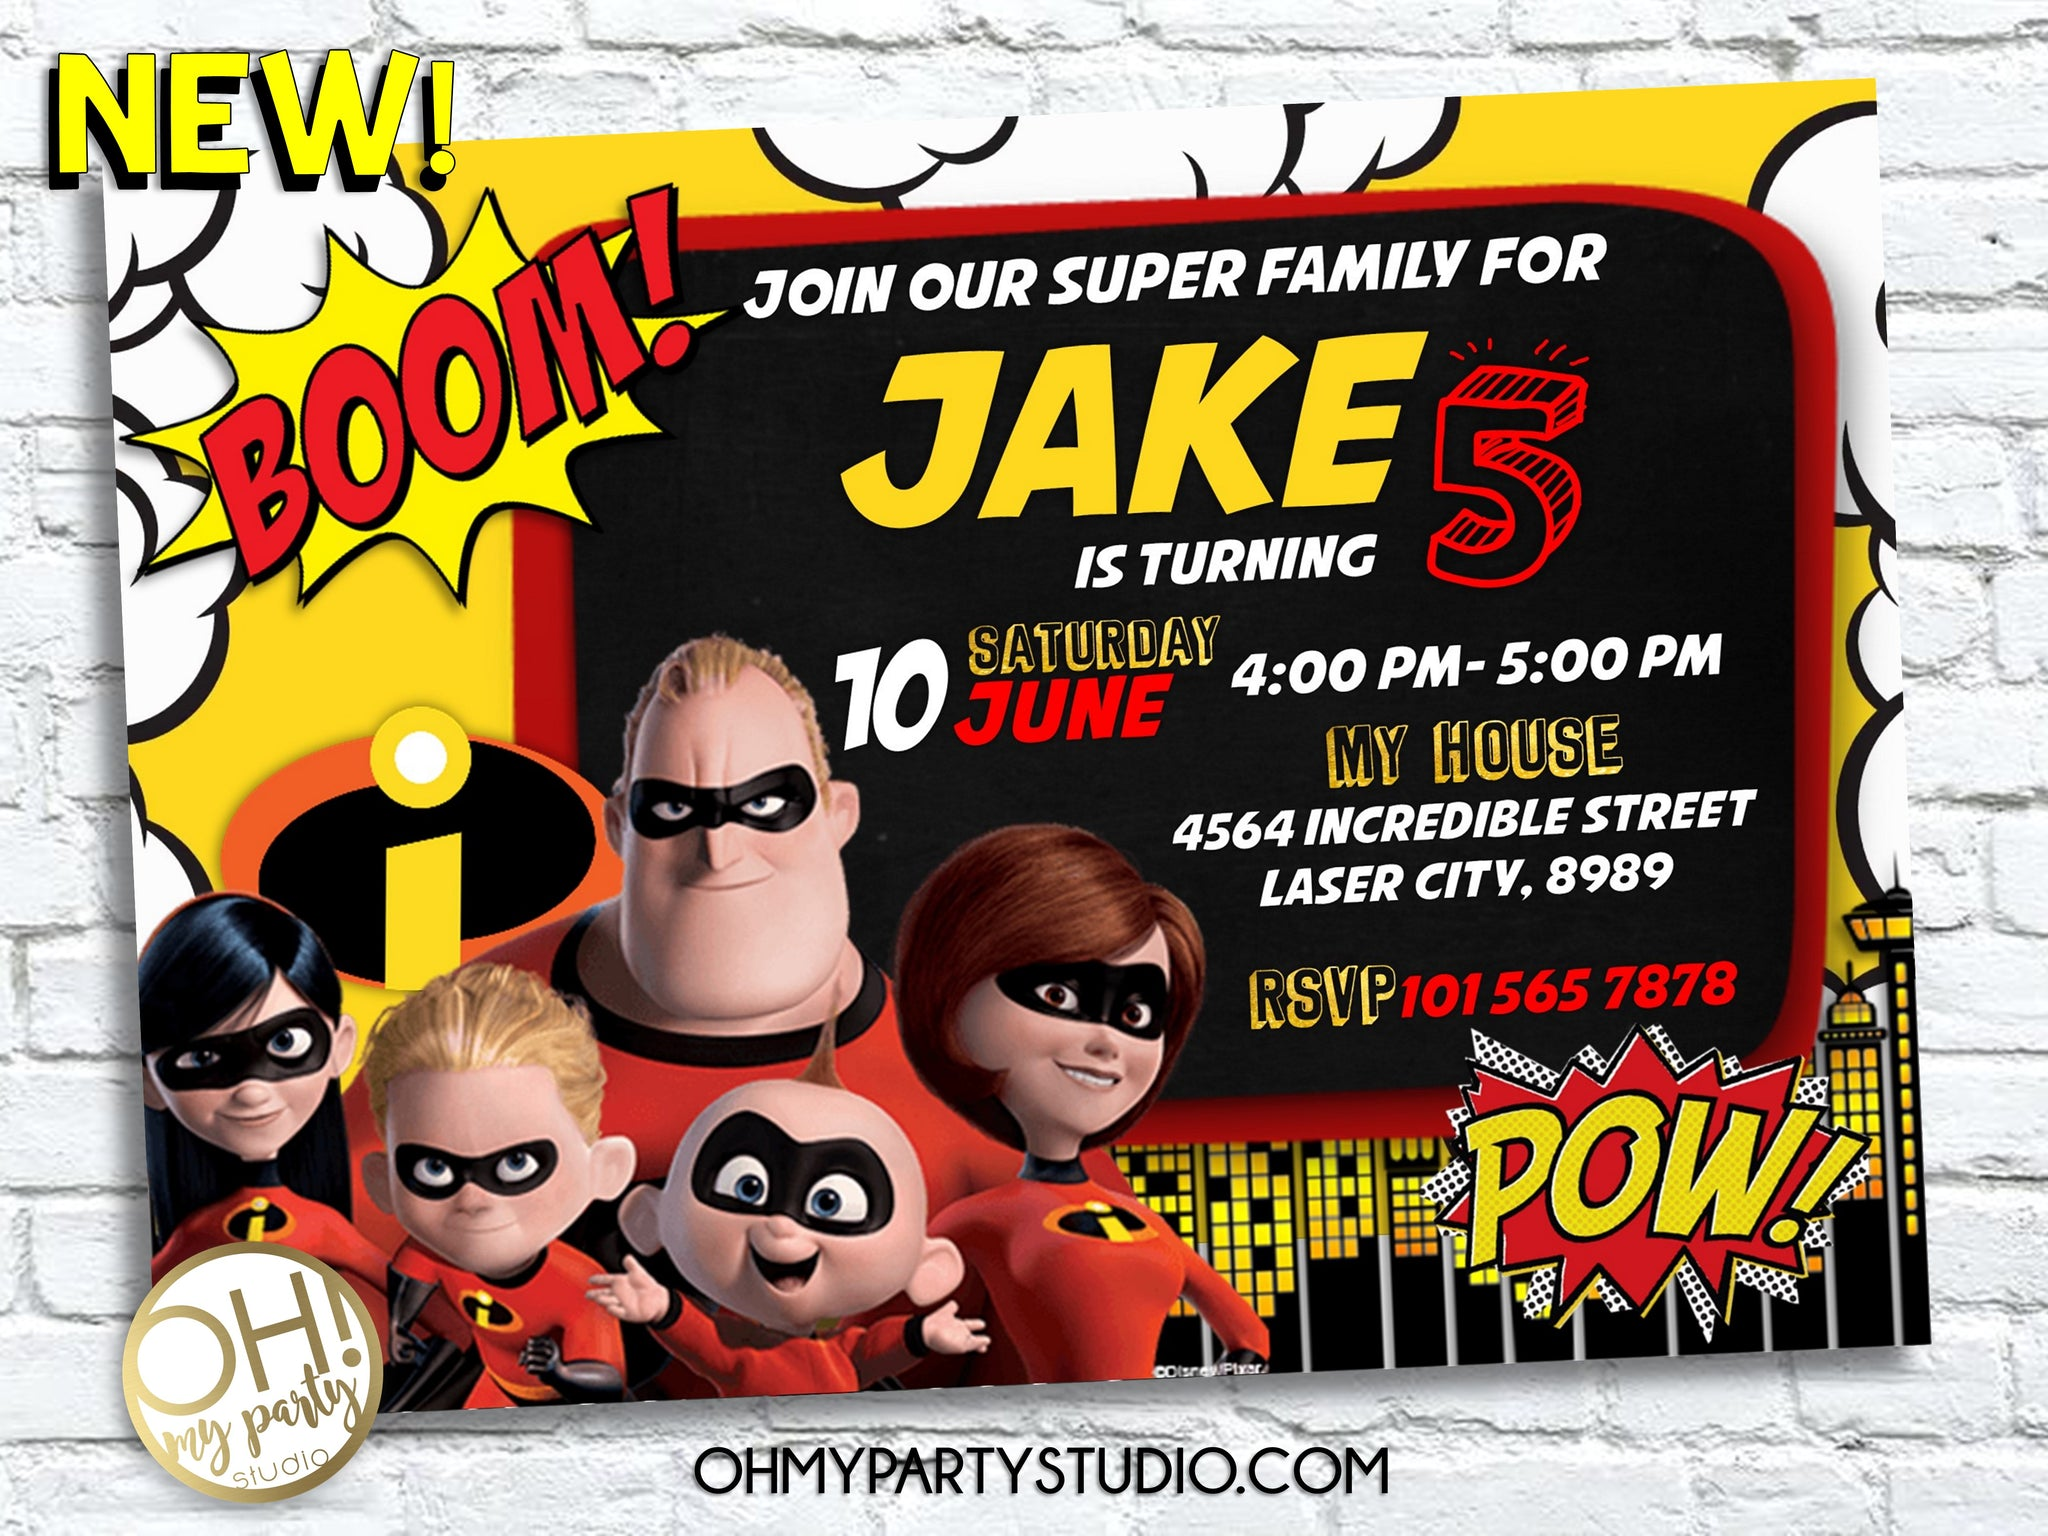 THE INCREDIBLES BIRTHDAY PARTY, THE INCREDIBLES BIRTHDAY INVITATION, THE INCREDIBLES PARTY IDEAS, THE INCREDIBLES PARTY SIBLINGS, THE INCREDIBLES SIBLINGS INVITATION, THE INCREDIBLES PARTY, THE INCREDIBLES BIRTHDAY, THE INCREDIBLES BIRTHDAY PARTY, THE INCREDIBLES PARTY SUPPLIES, THE INCREDIBLES DIGITAL INVITATION, THE INCREDIBLES PARTY PRINTABLES, THE INCREDIBLES INVITE, JACK JACK INVITATION, JACK JACK BIRTHDAY, JACK JACK PARTY